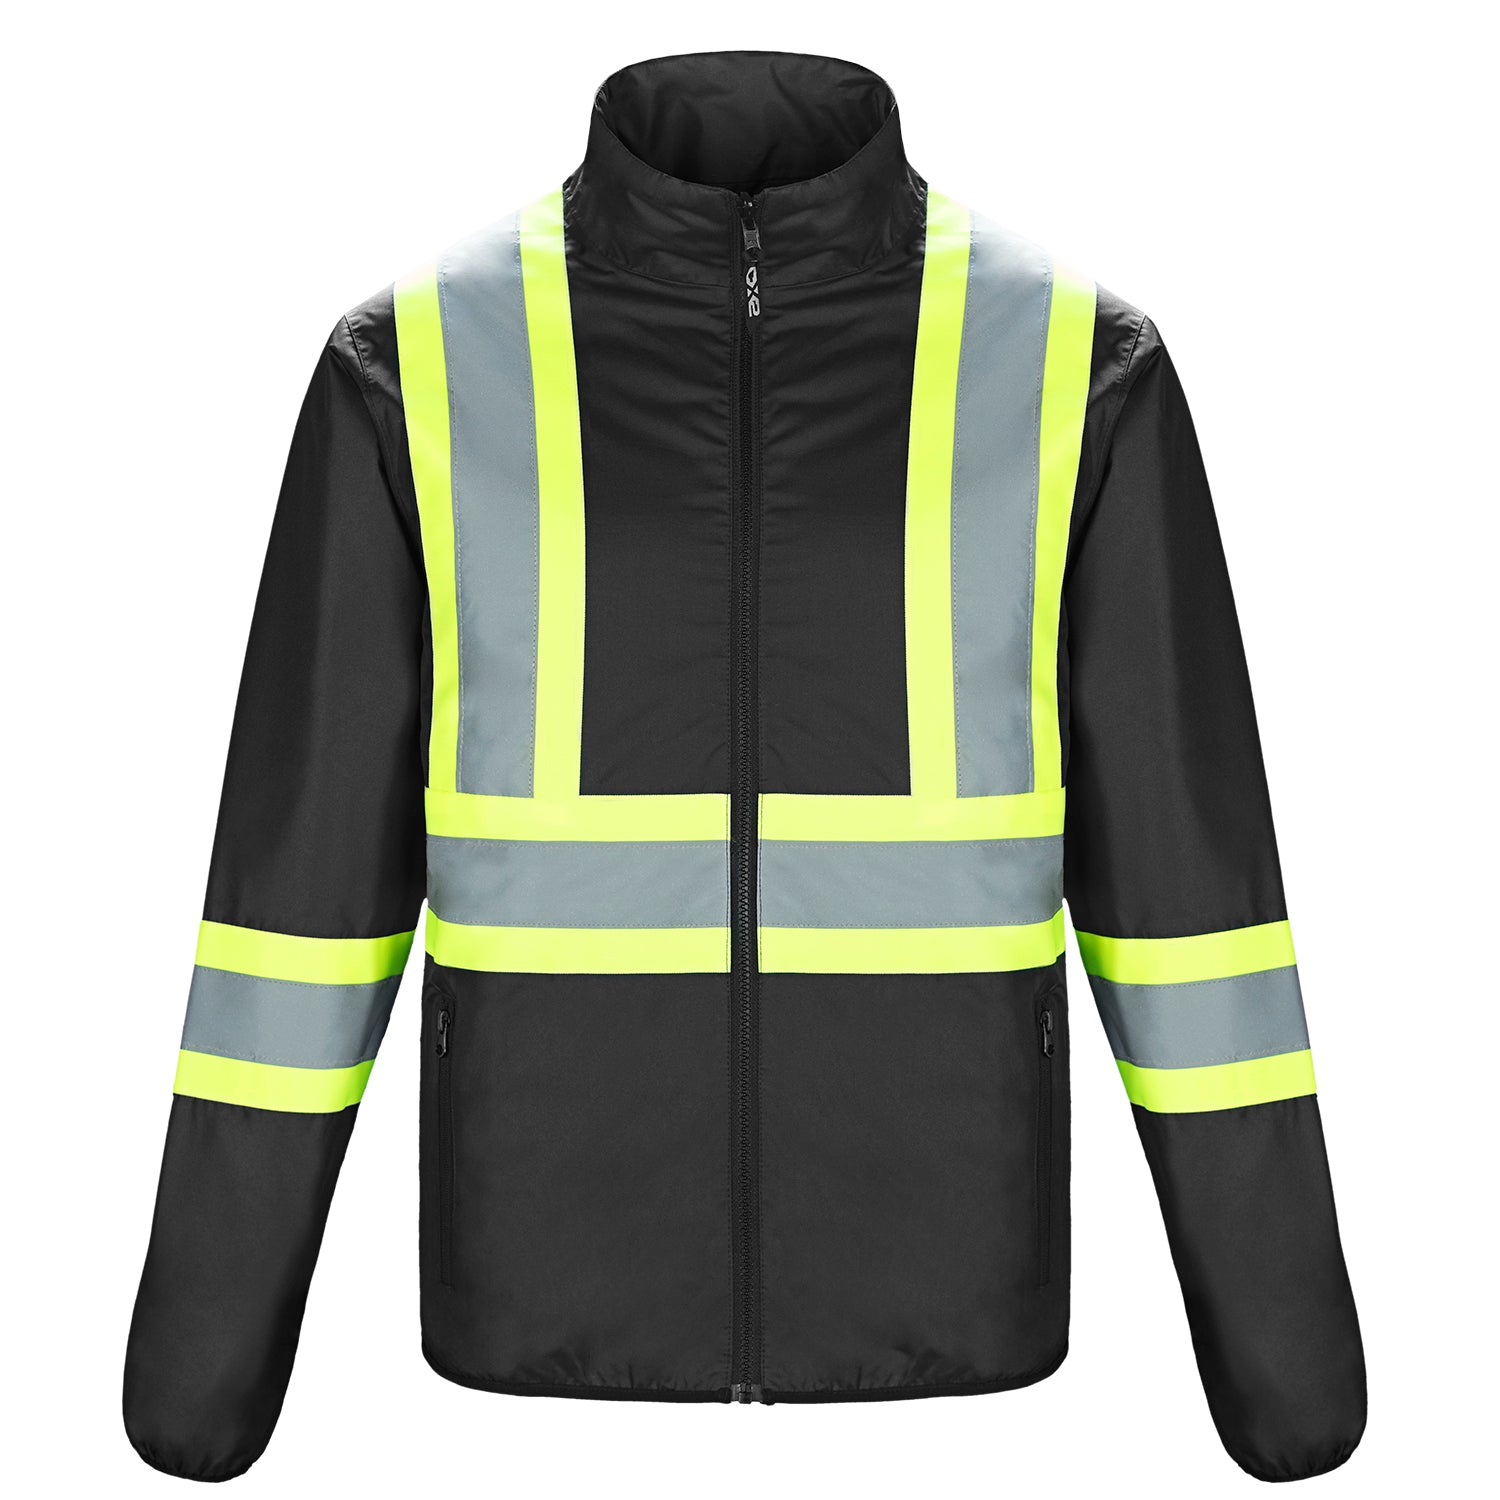 CANADA SPORTSWEAR MEN'S SAFEGUARD HI-VIS REVERSIBLE JACKET